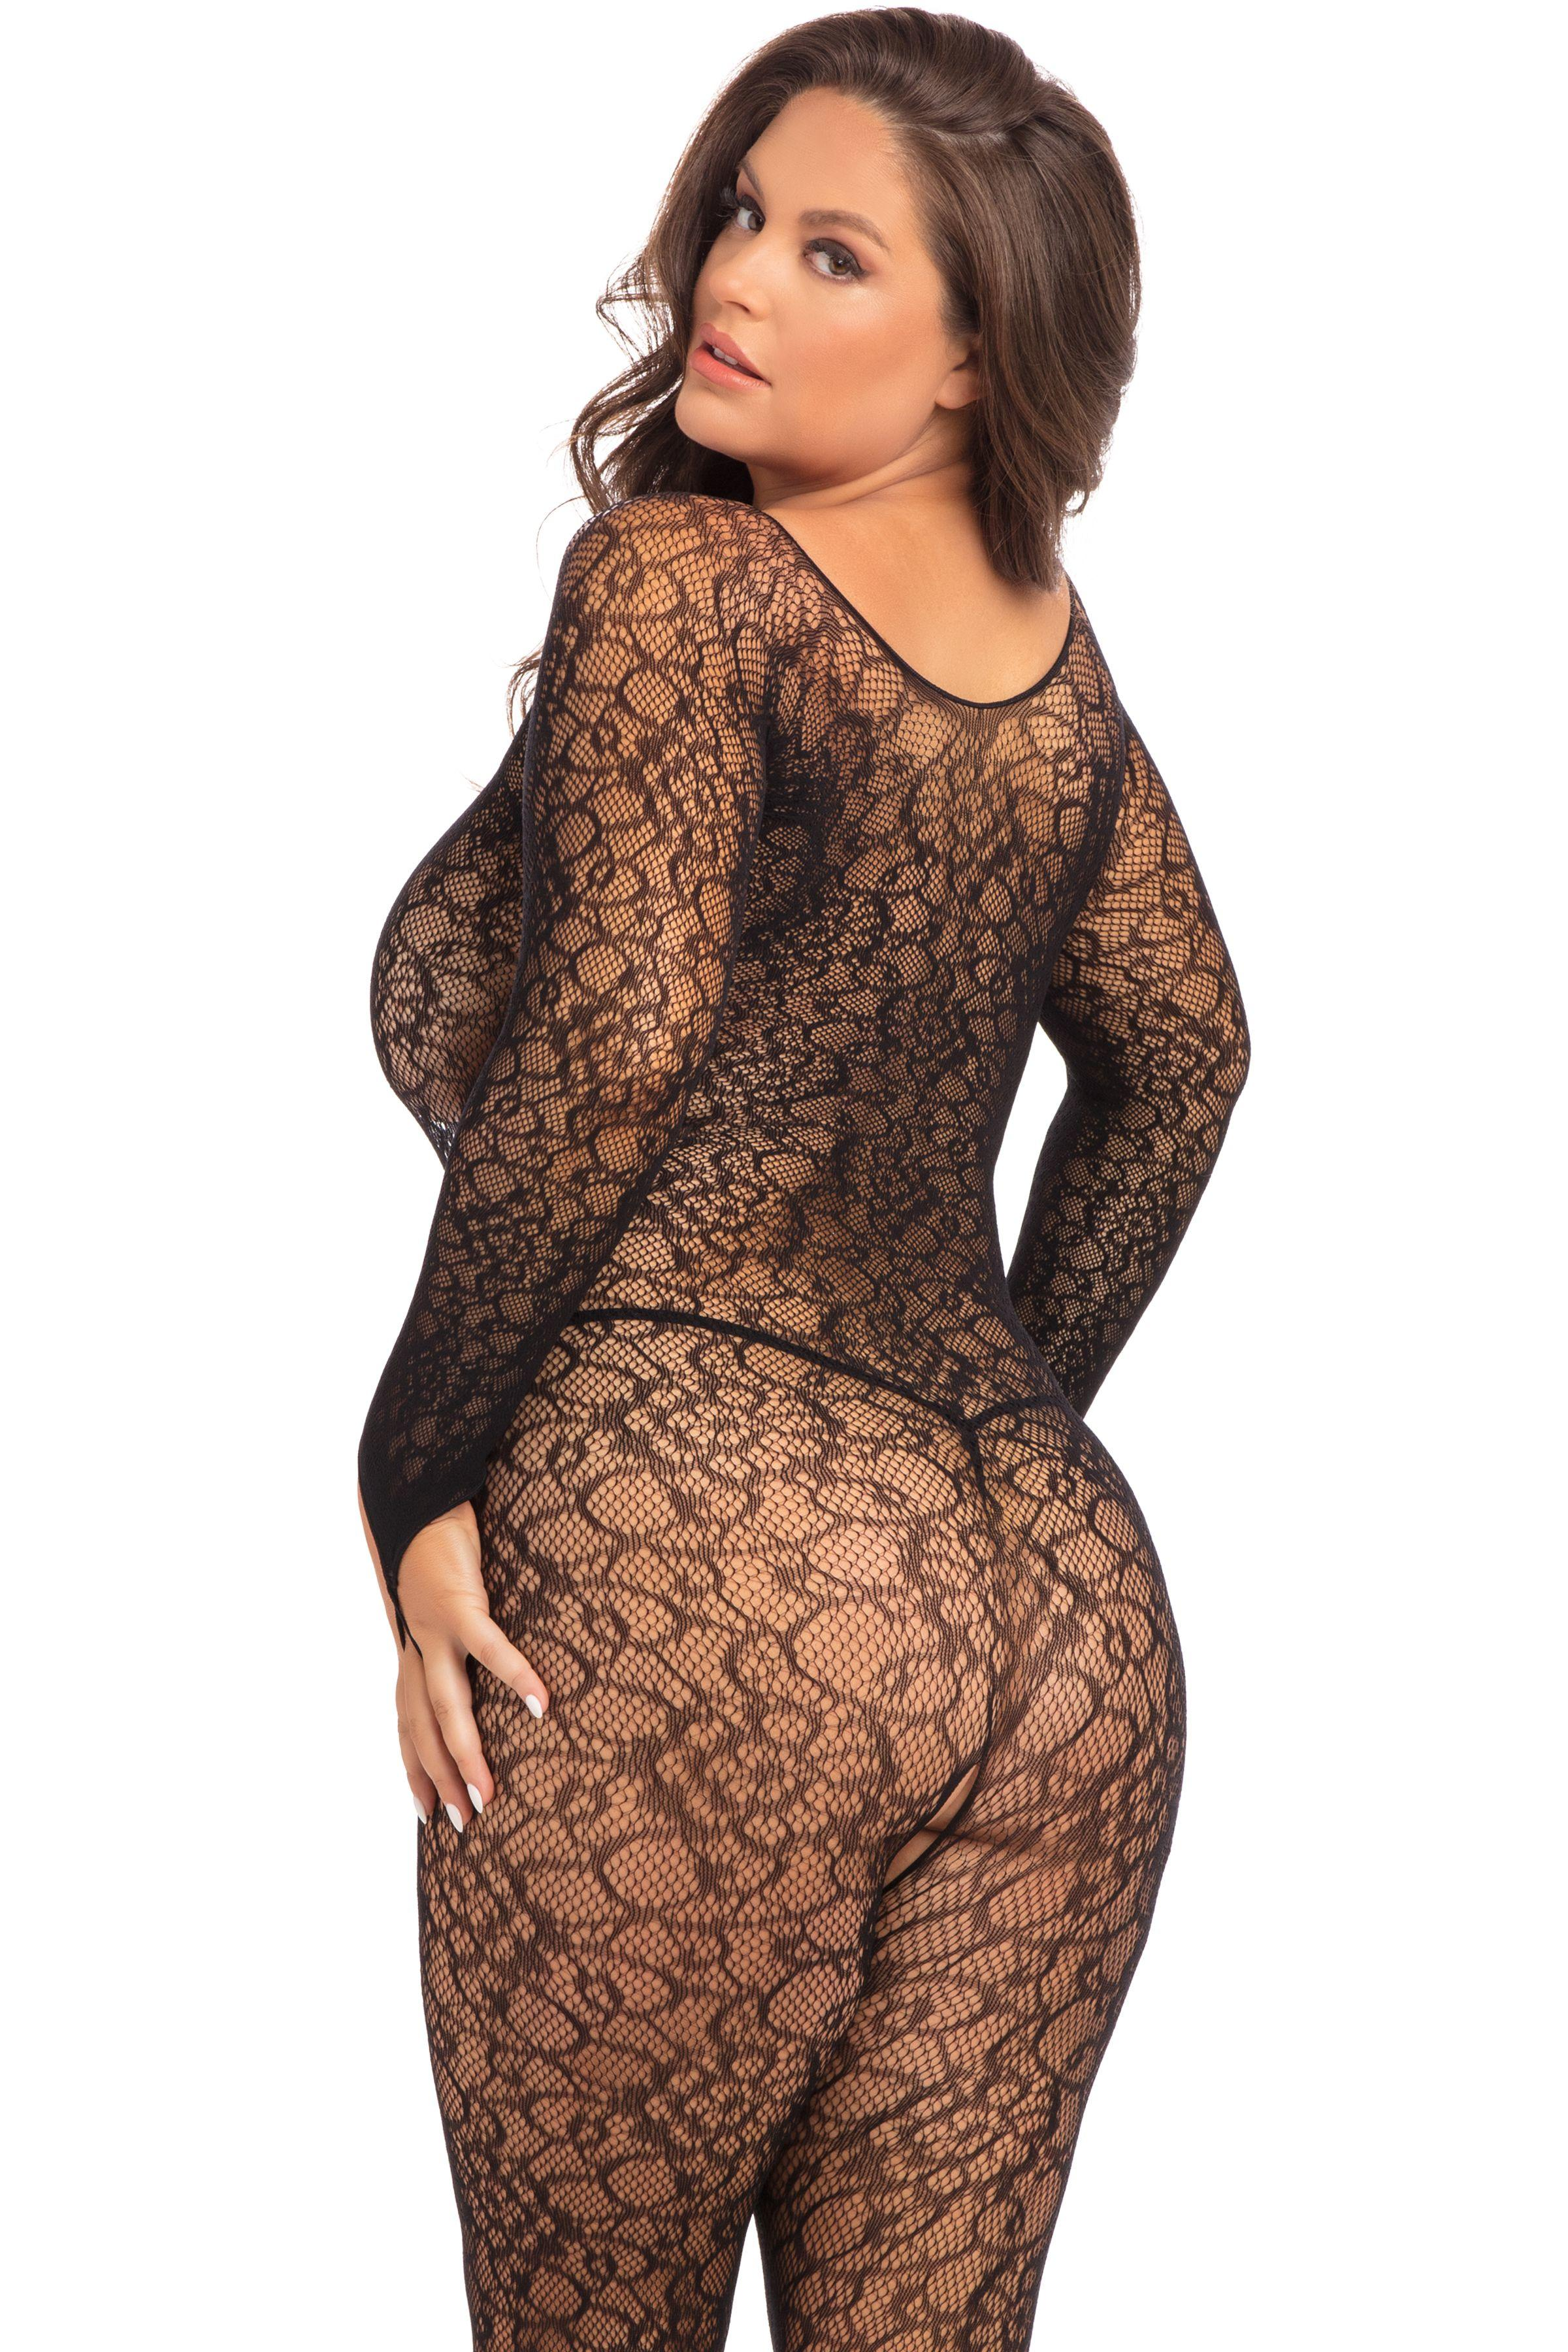 Crotchless Lace Bodystocking rear view